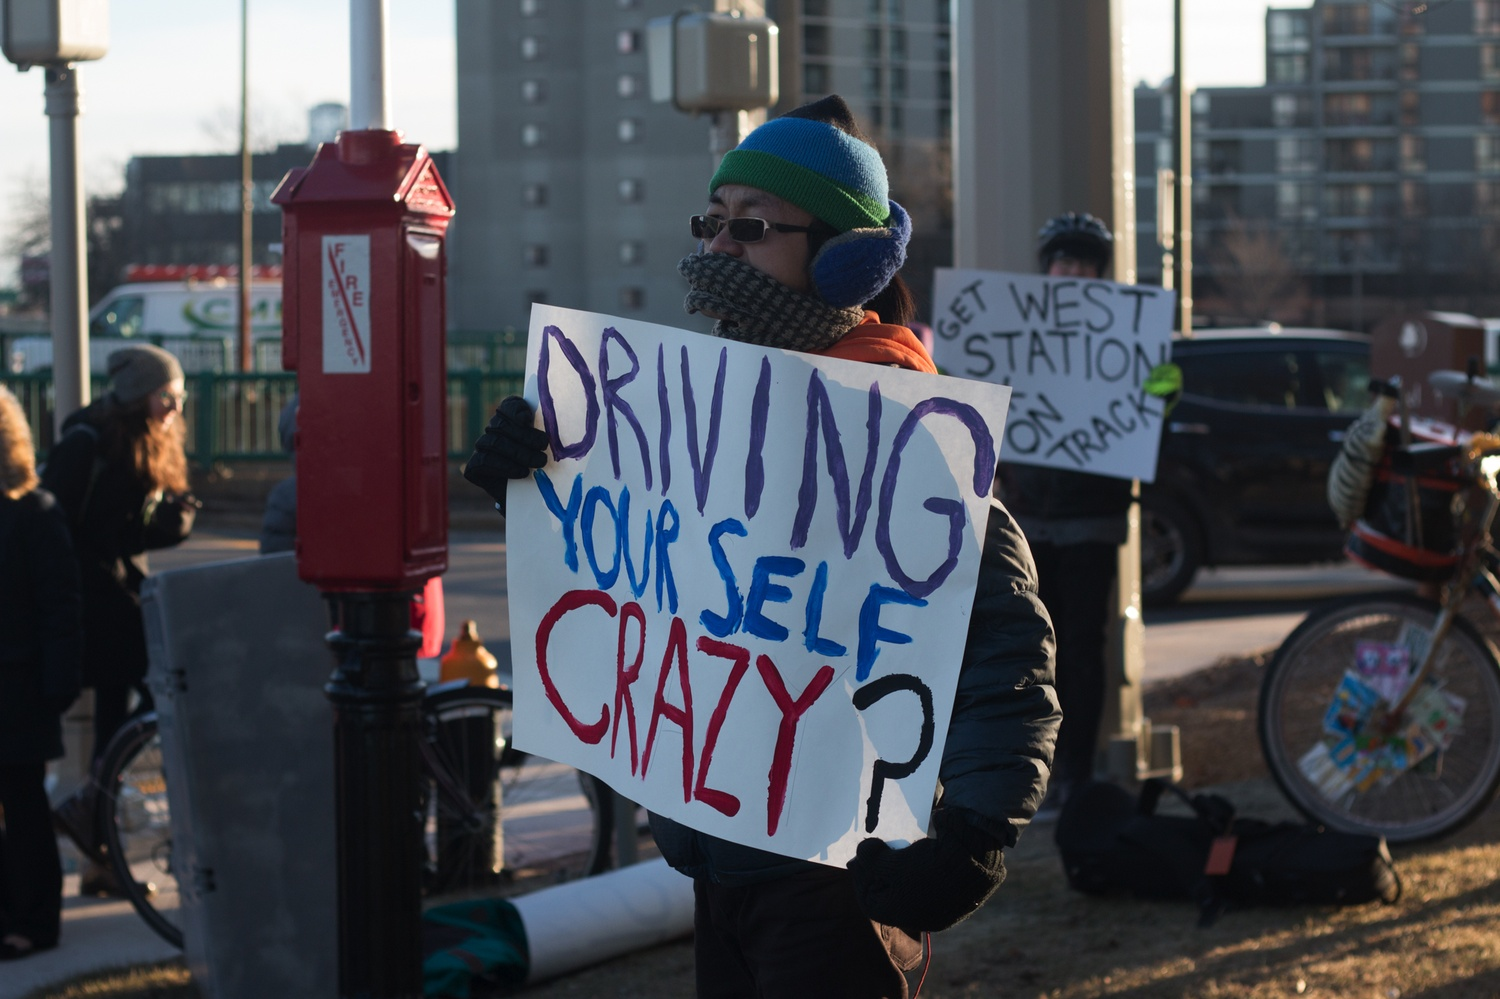 Transit Protest - Signs